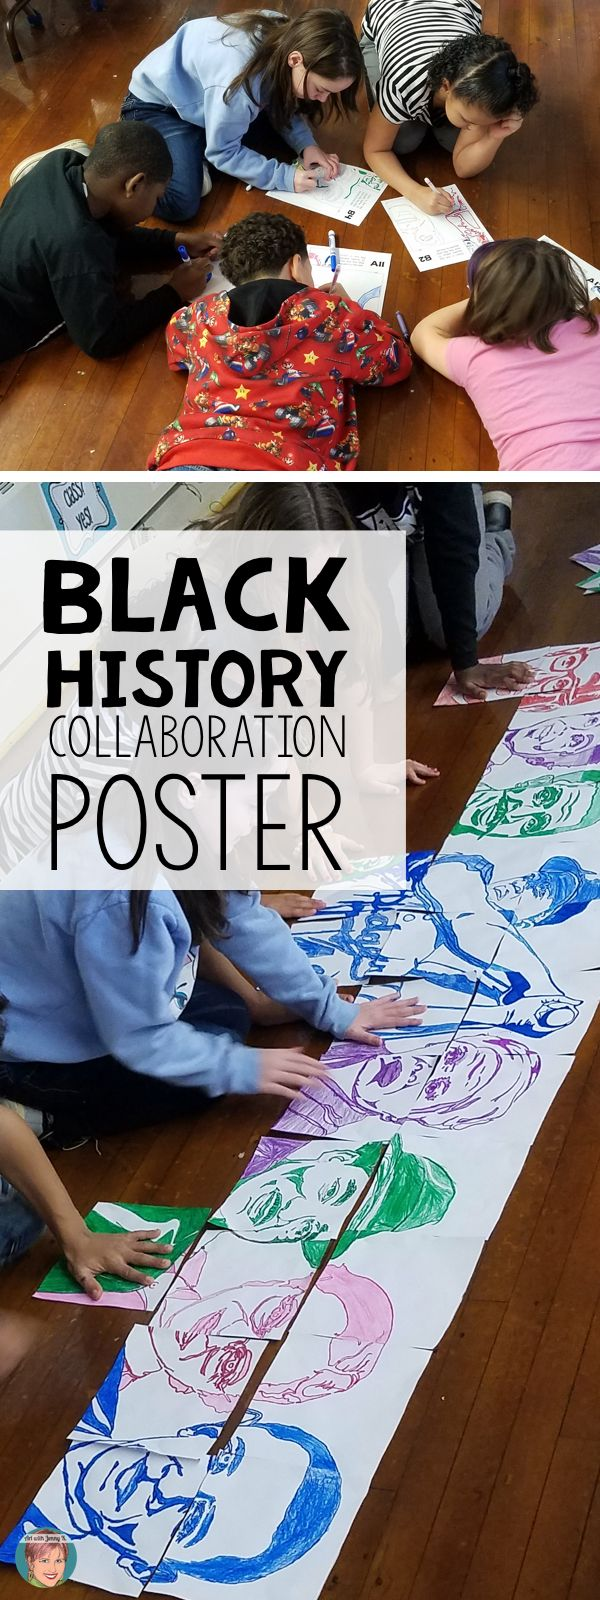 """Students will work together for Black History Month to create a collaboration poster of a variety of """"famous faces"""" that have made a difference. Each student gets to participate in coloring and cutting out their piece and then putting the poster together."""